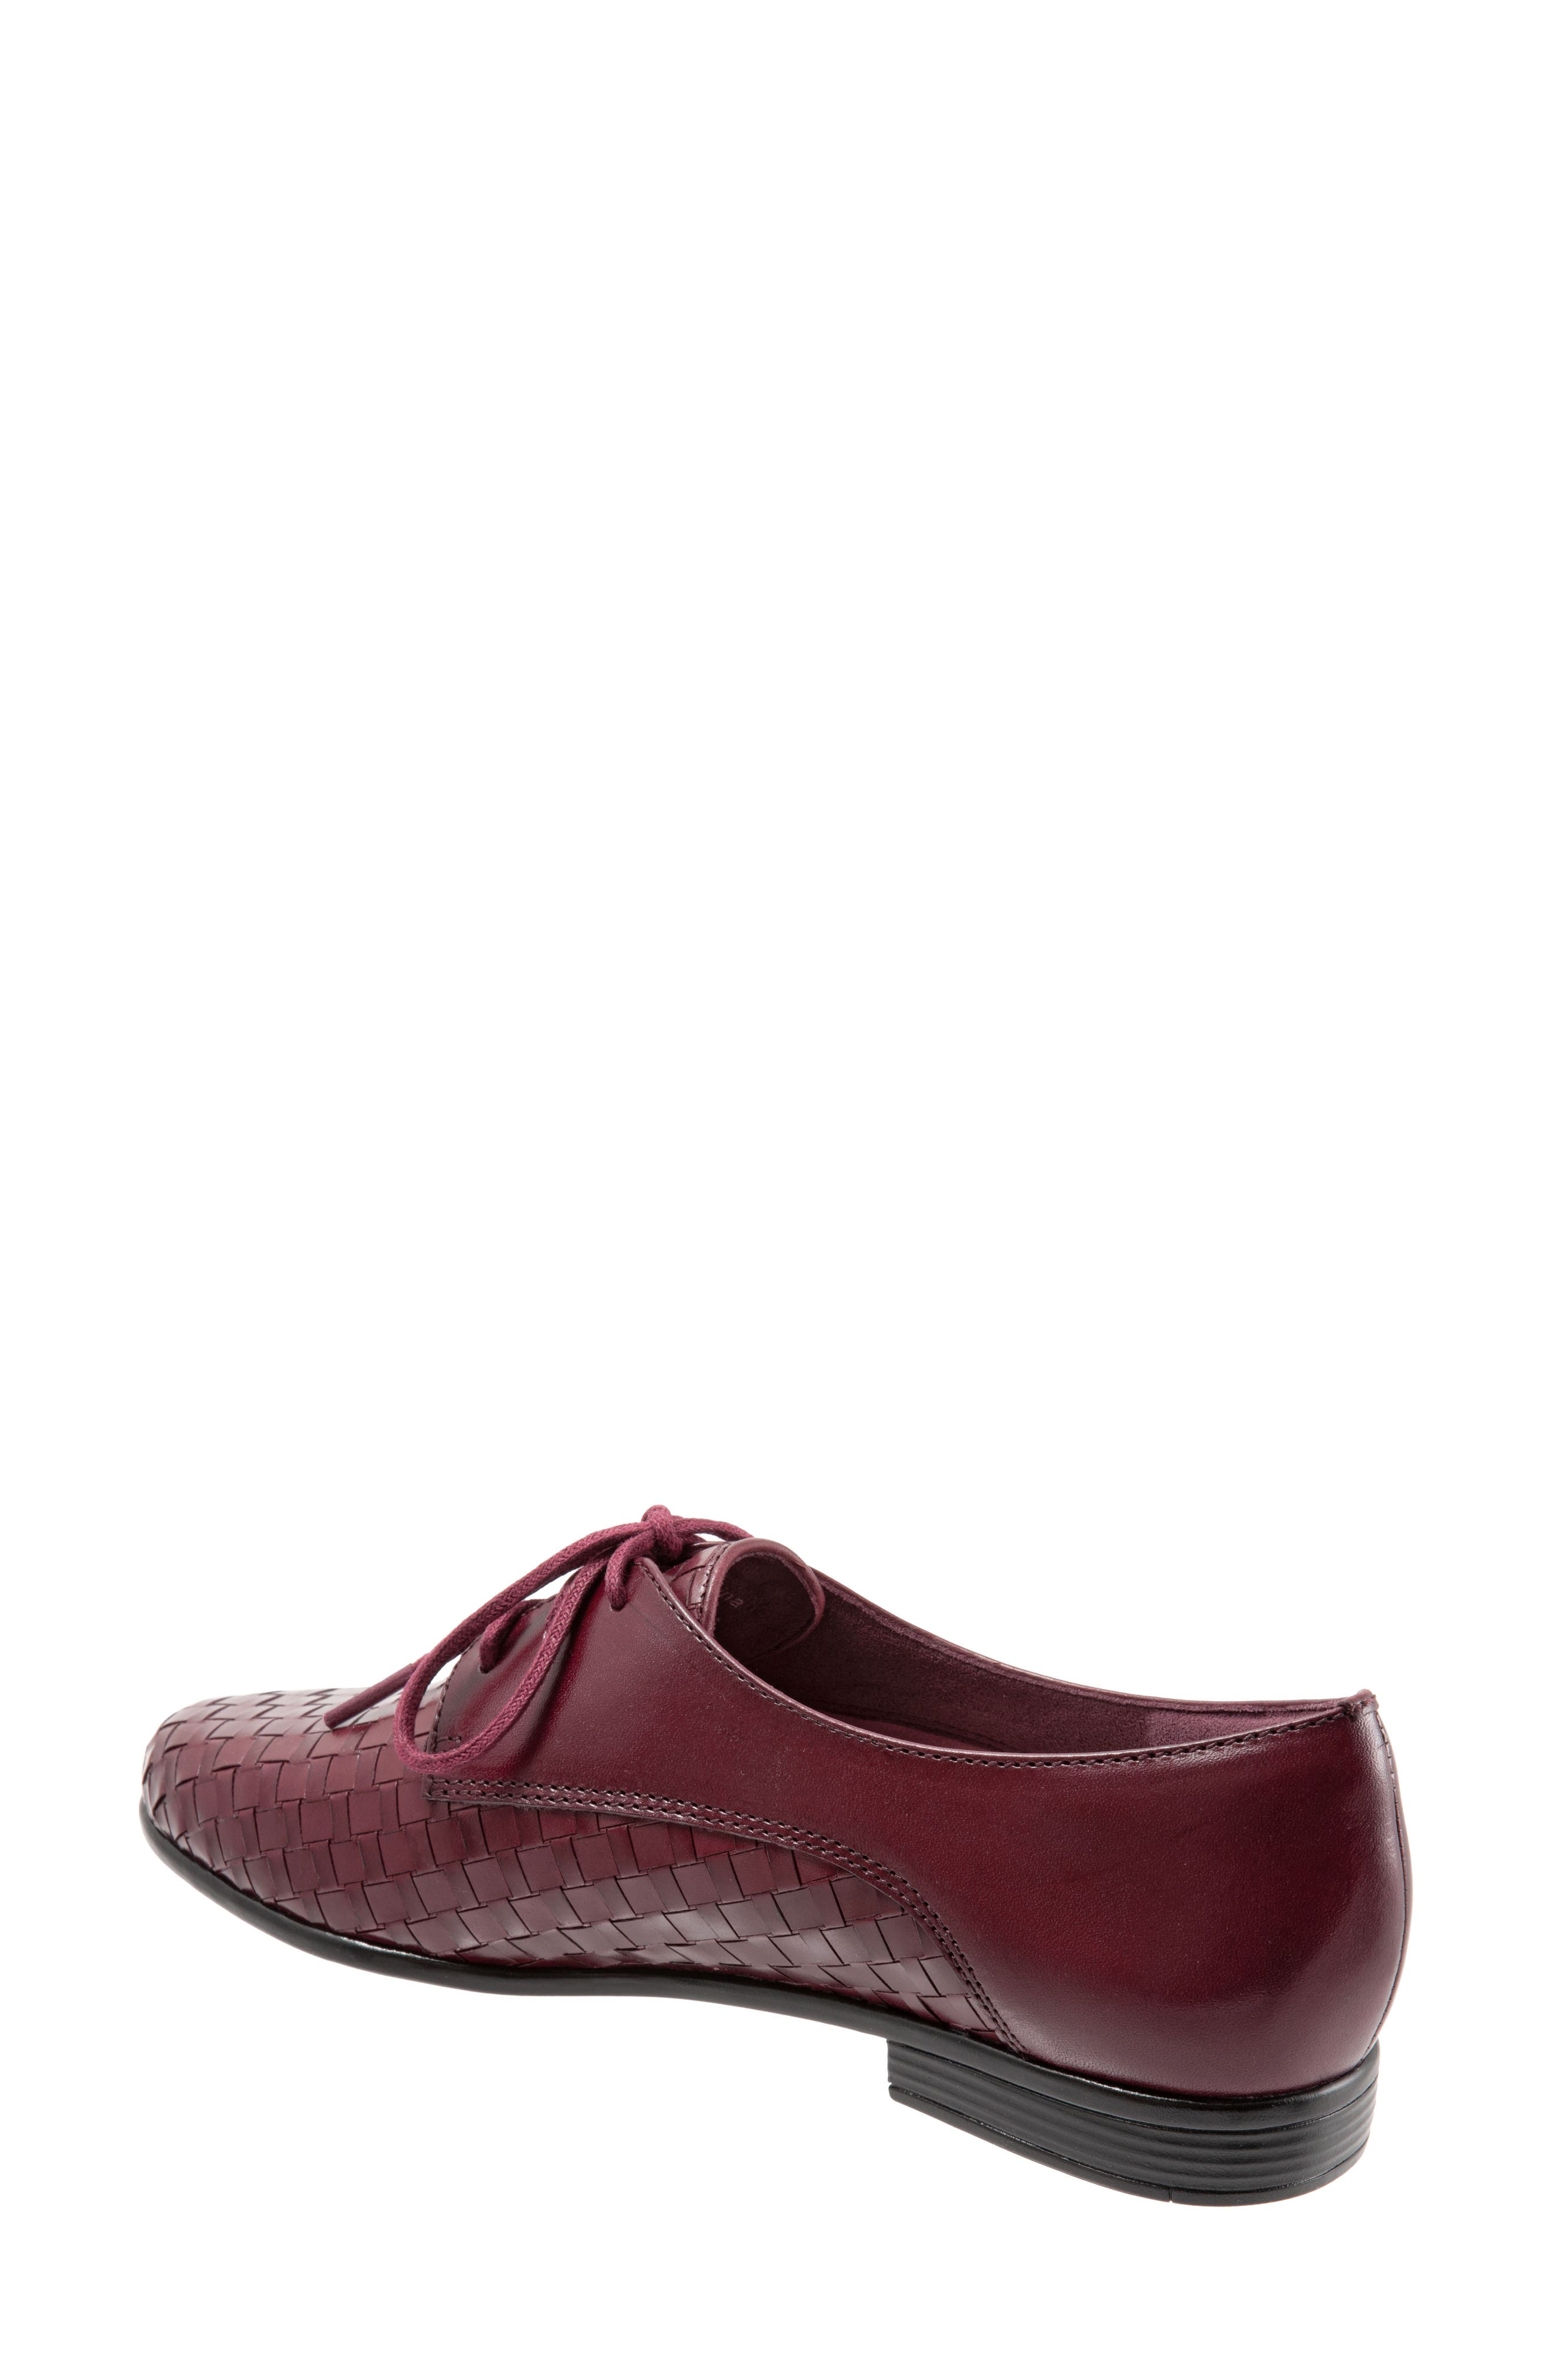 Lizzie Derby Flat,                             Alternate thumbnail 2, color,                             BLACK CHERRY LEATHER